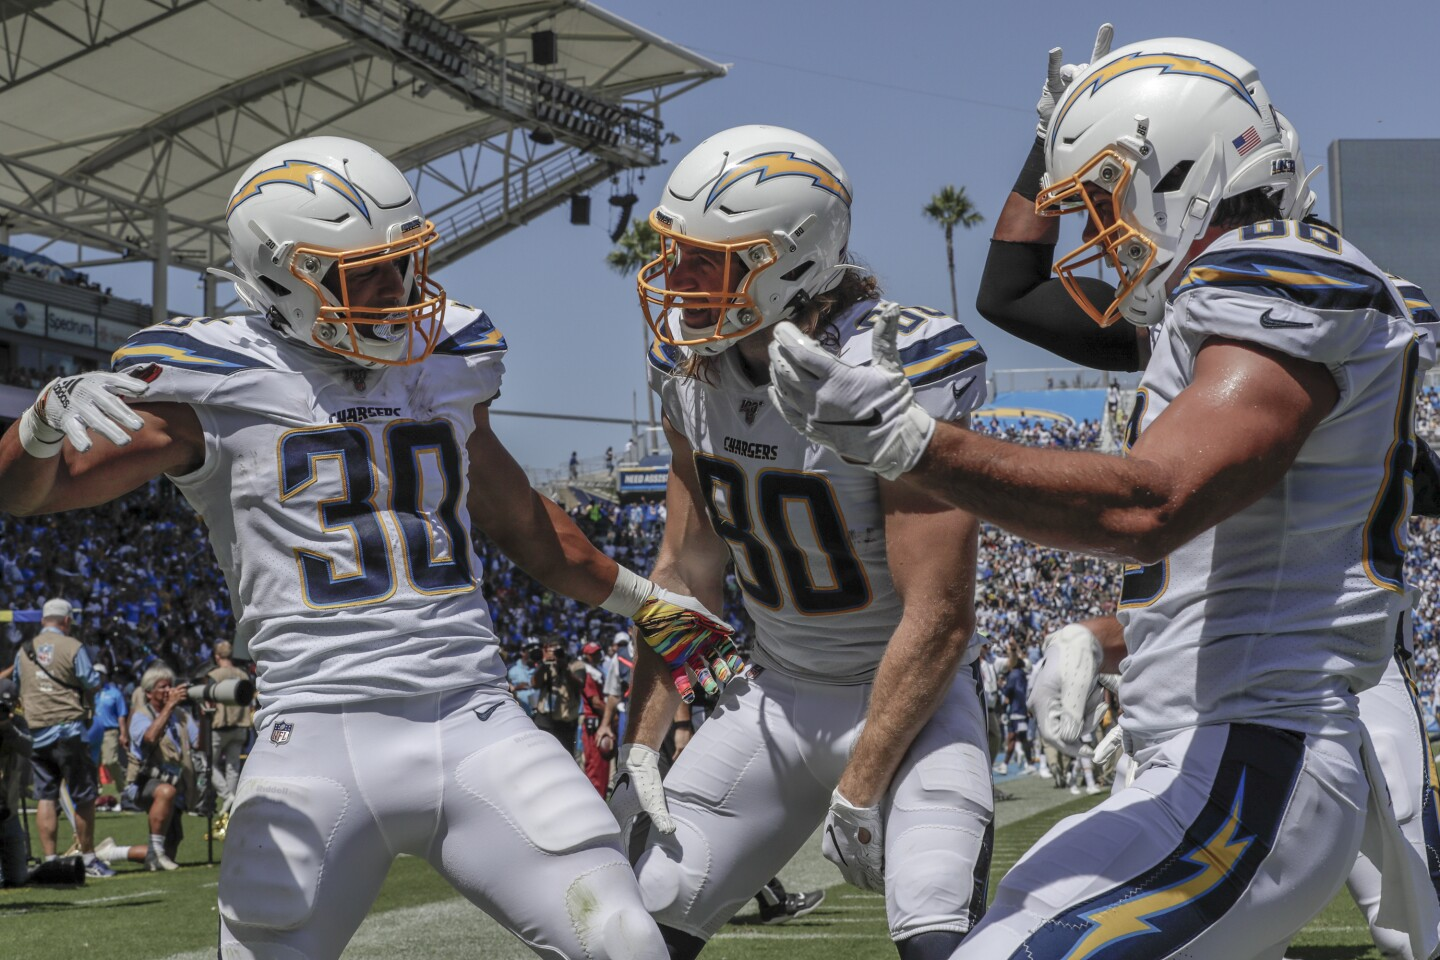 CARSON, CA, SUNDAY, SEPTEMBER 8, 2019 - Chargers running back Austin Ekeler celebrates a touchdown with teammates in the first quarter against the Colts at Dignity Health Sports Park. (Robert Gauthier/Los Angeles Times)